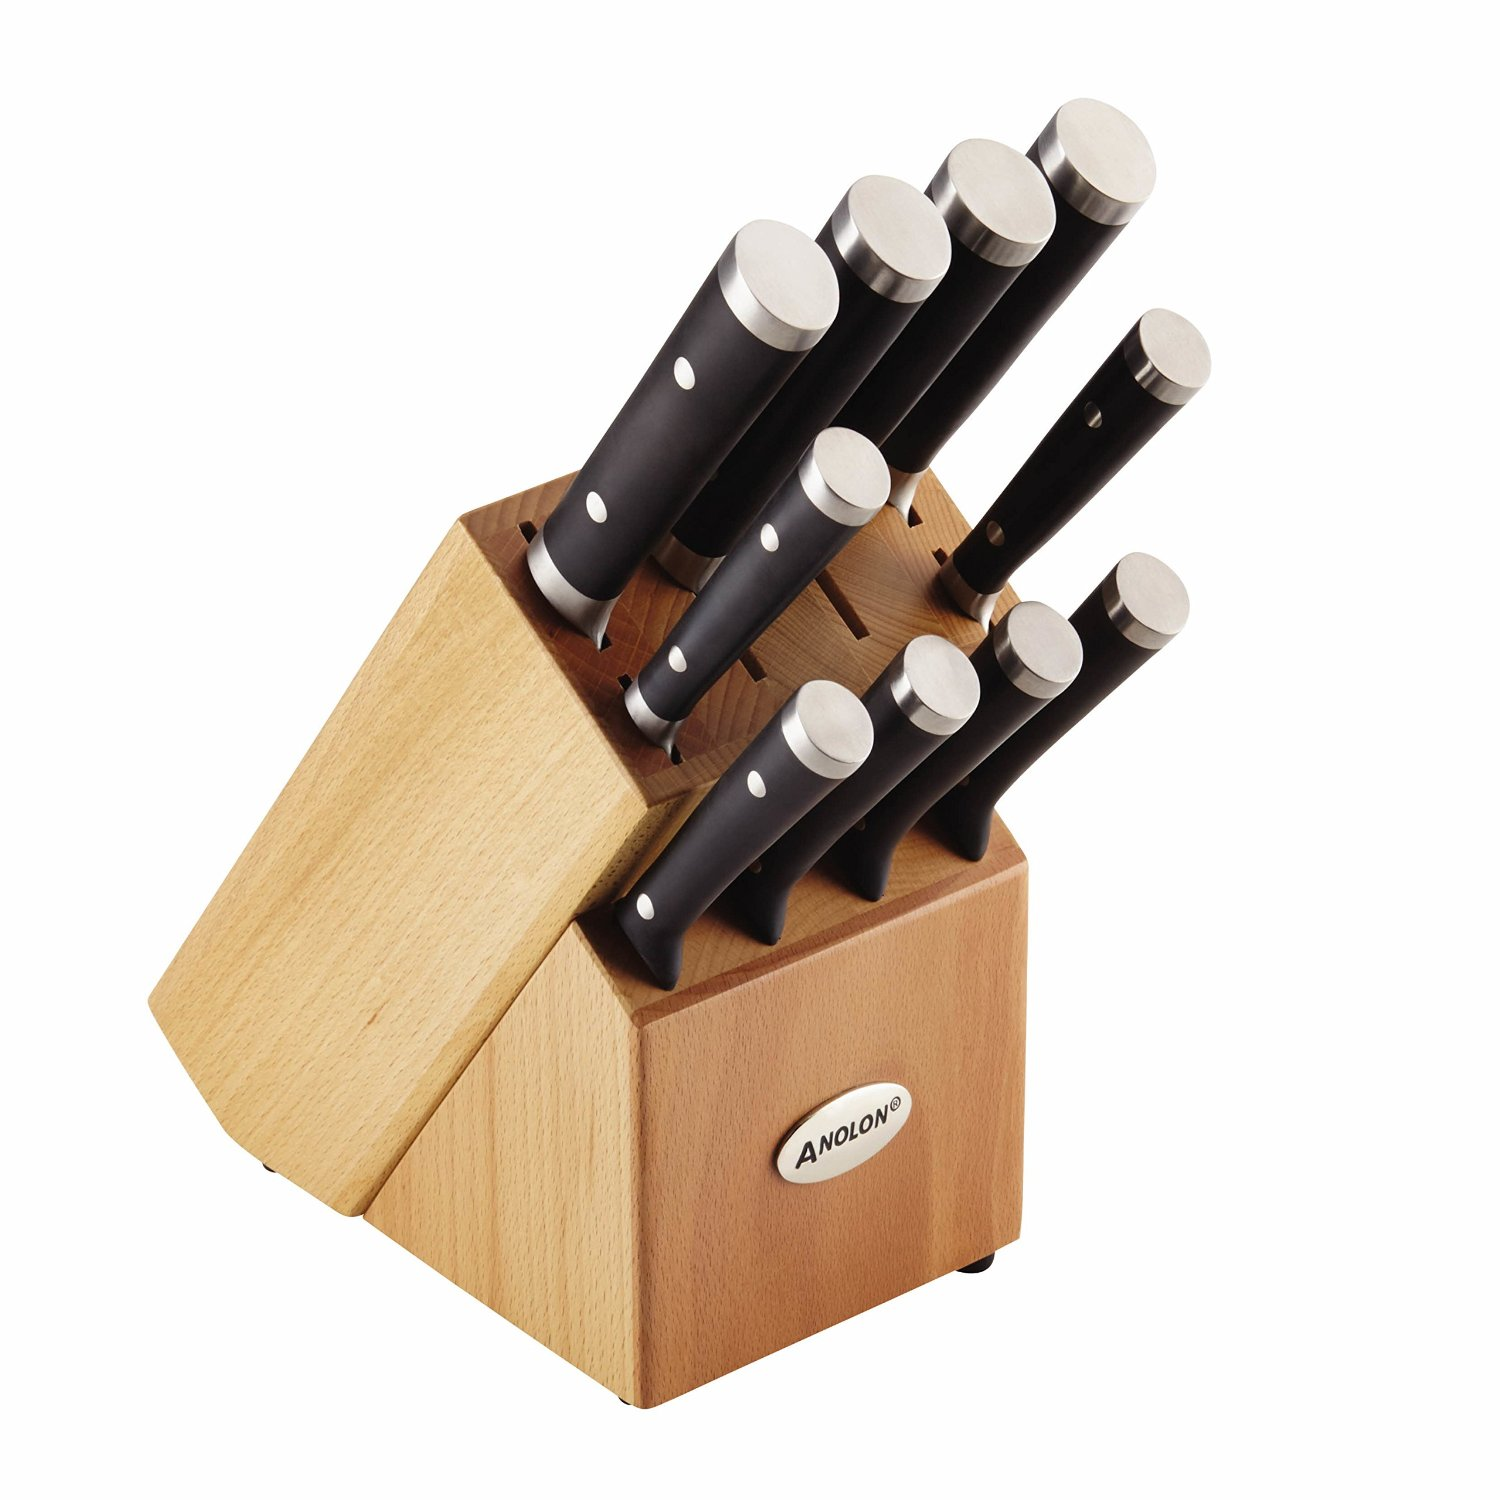 Anolon 11-Piece Japanese Stainless Steel Knife Set, Black